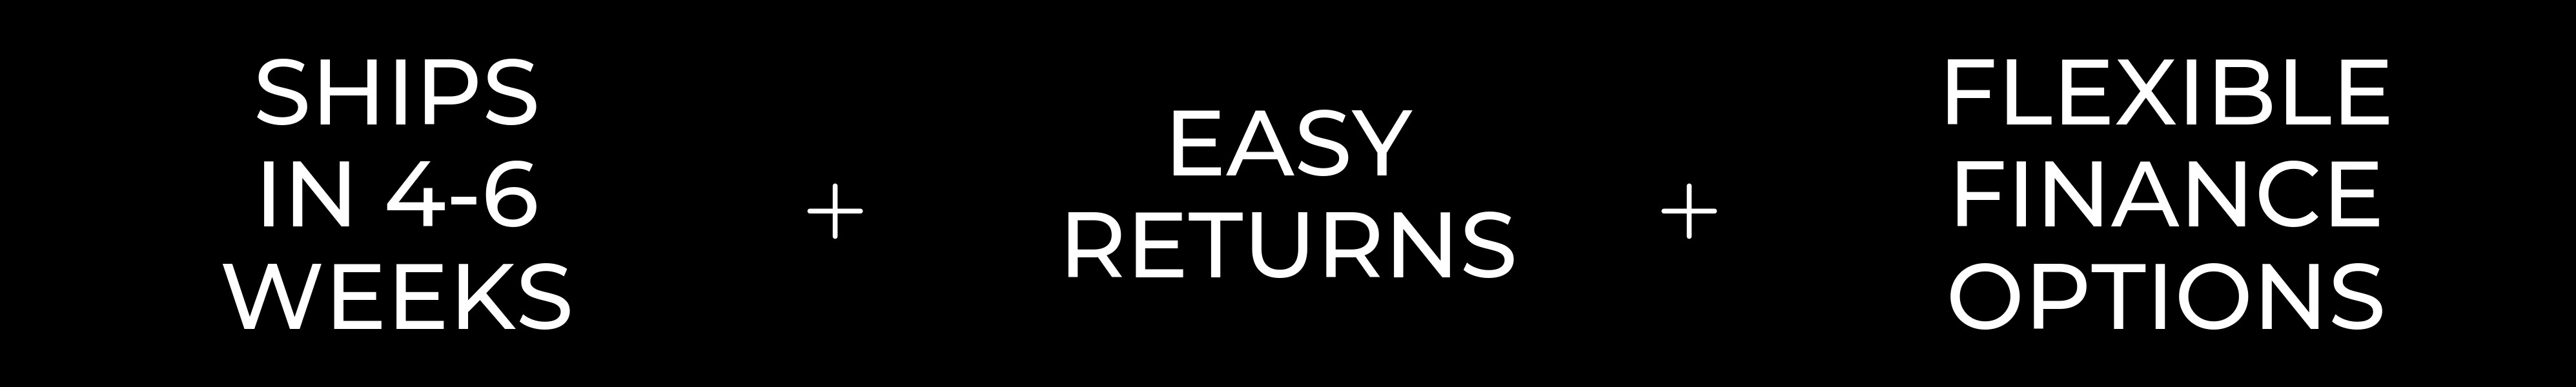 cUSTOM DOG CRATE FURNITURE COMPANY OFFERS FLEXIBLE FINANCE EASY RETURNS AND FAST SHIPPING